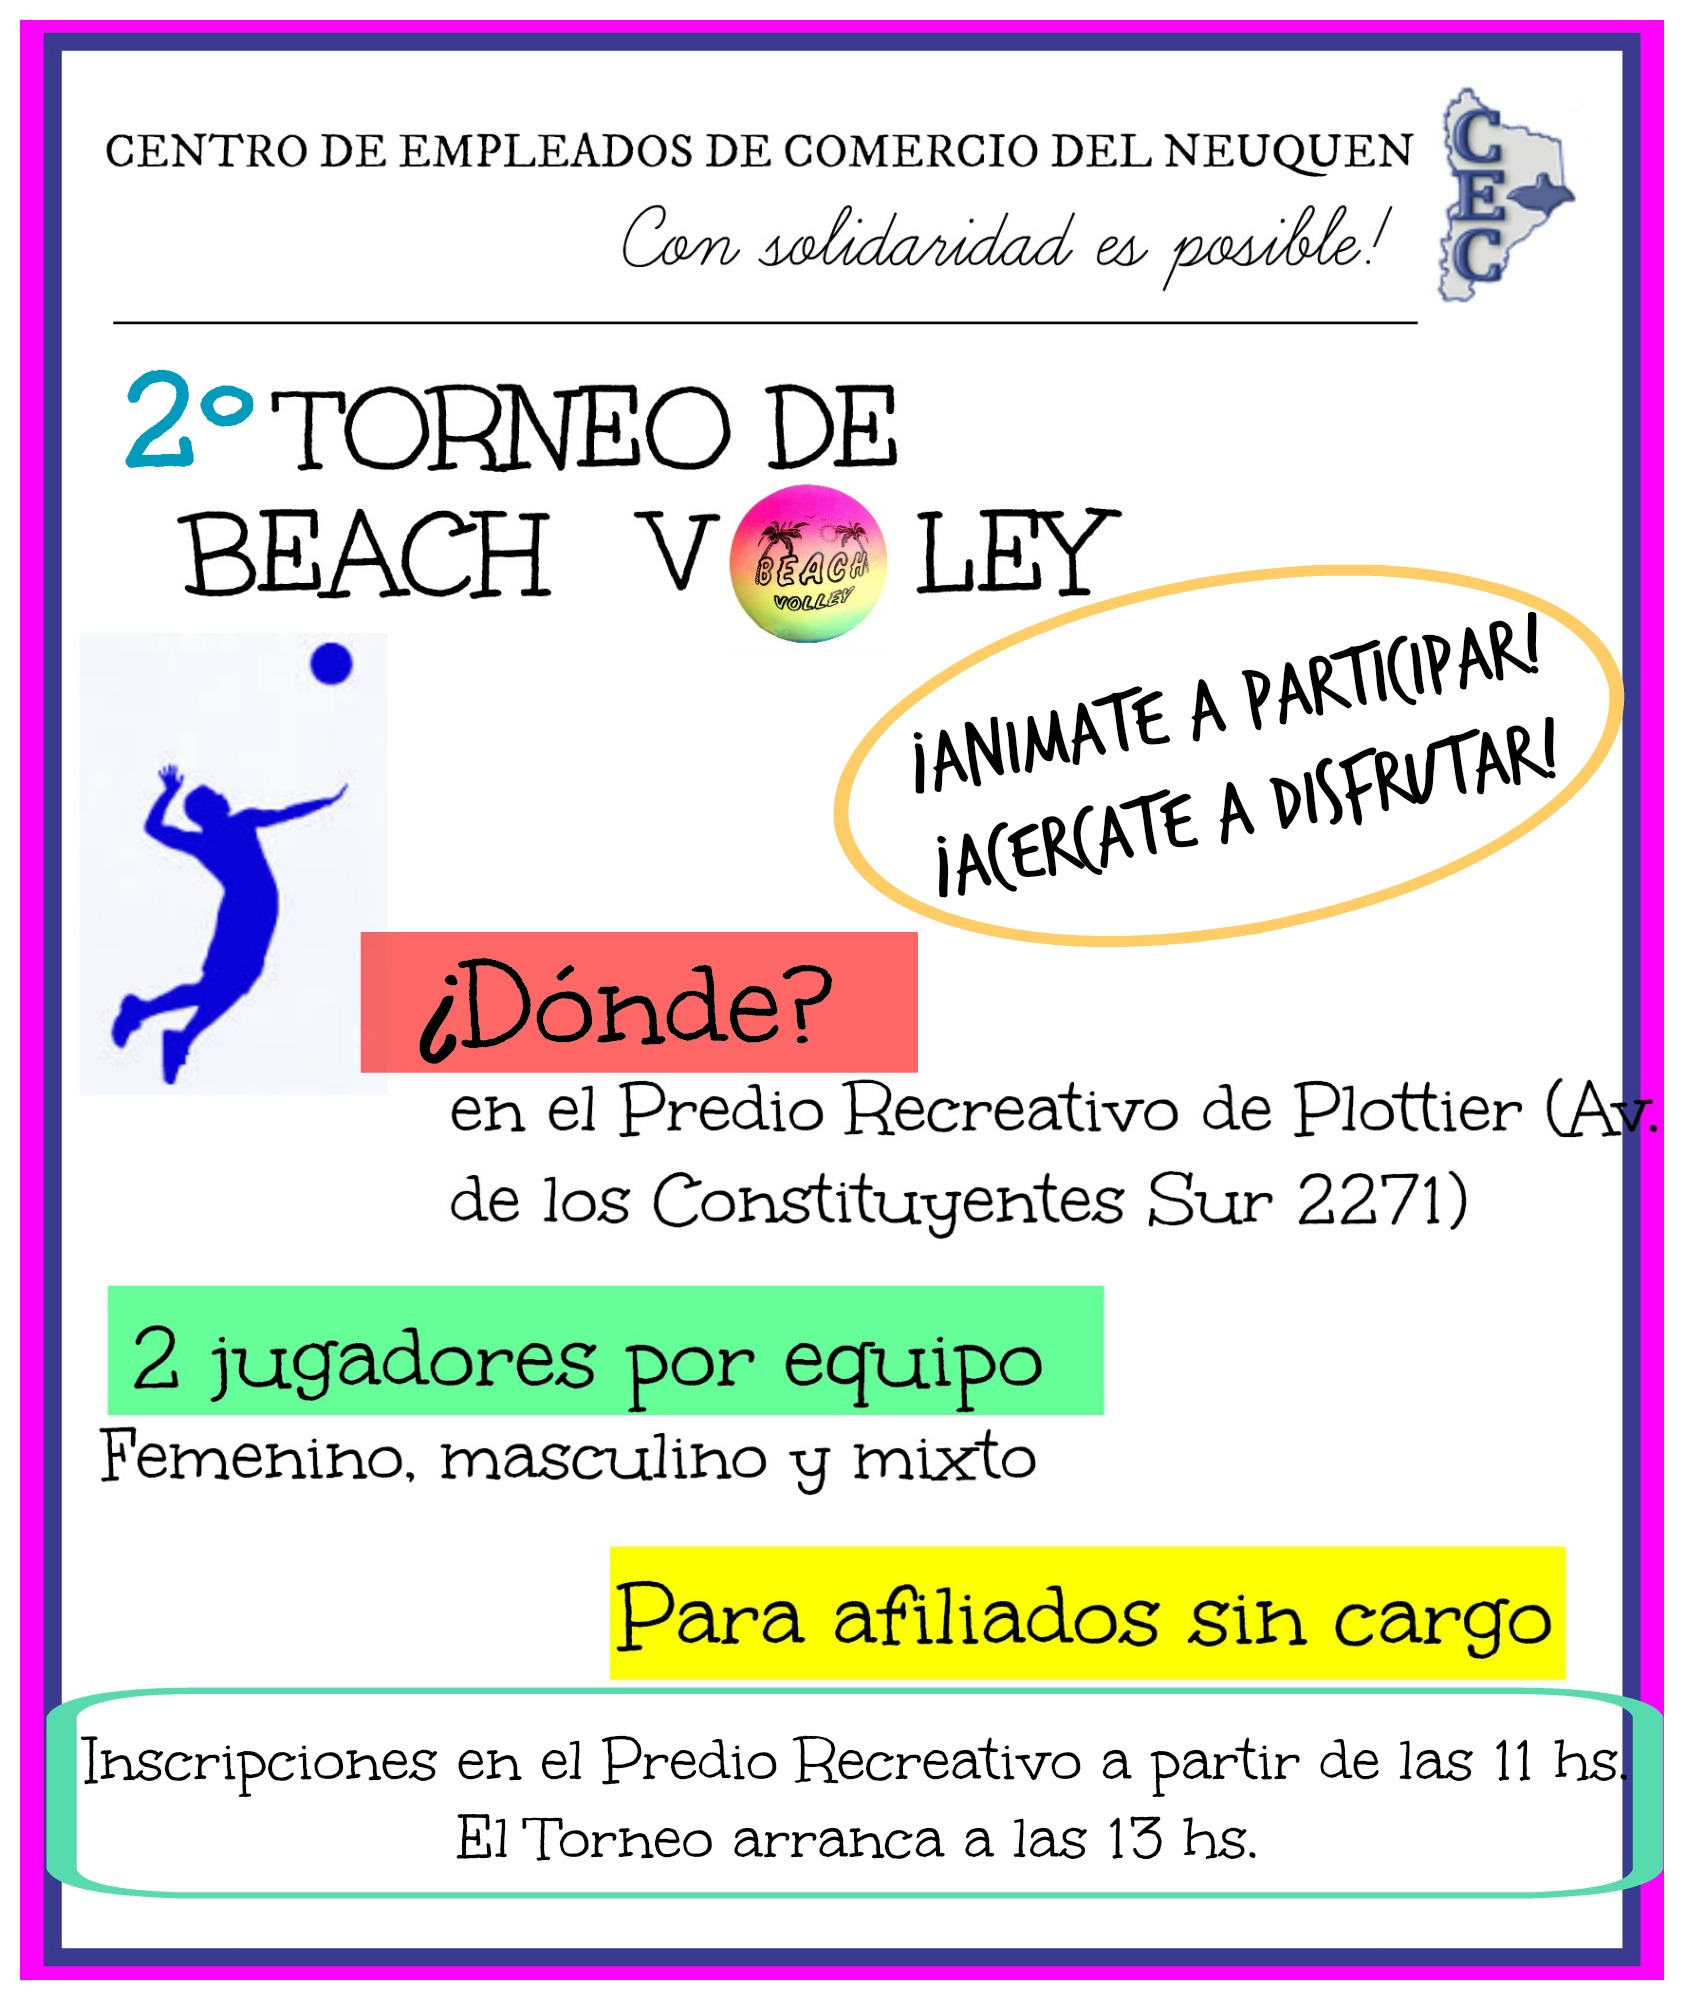 ESTE DOMINGO 7 DE FEBRERO TE ESPERAMOS EN EL PREDIO RECREATIVO DE PLOTTIER